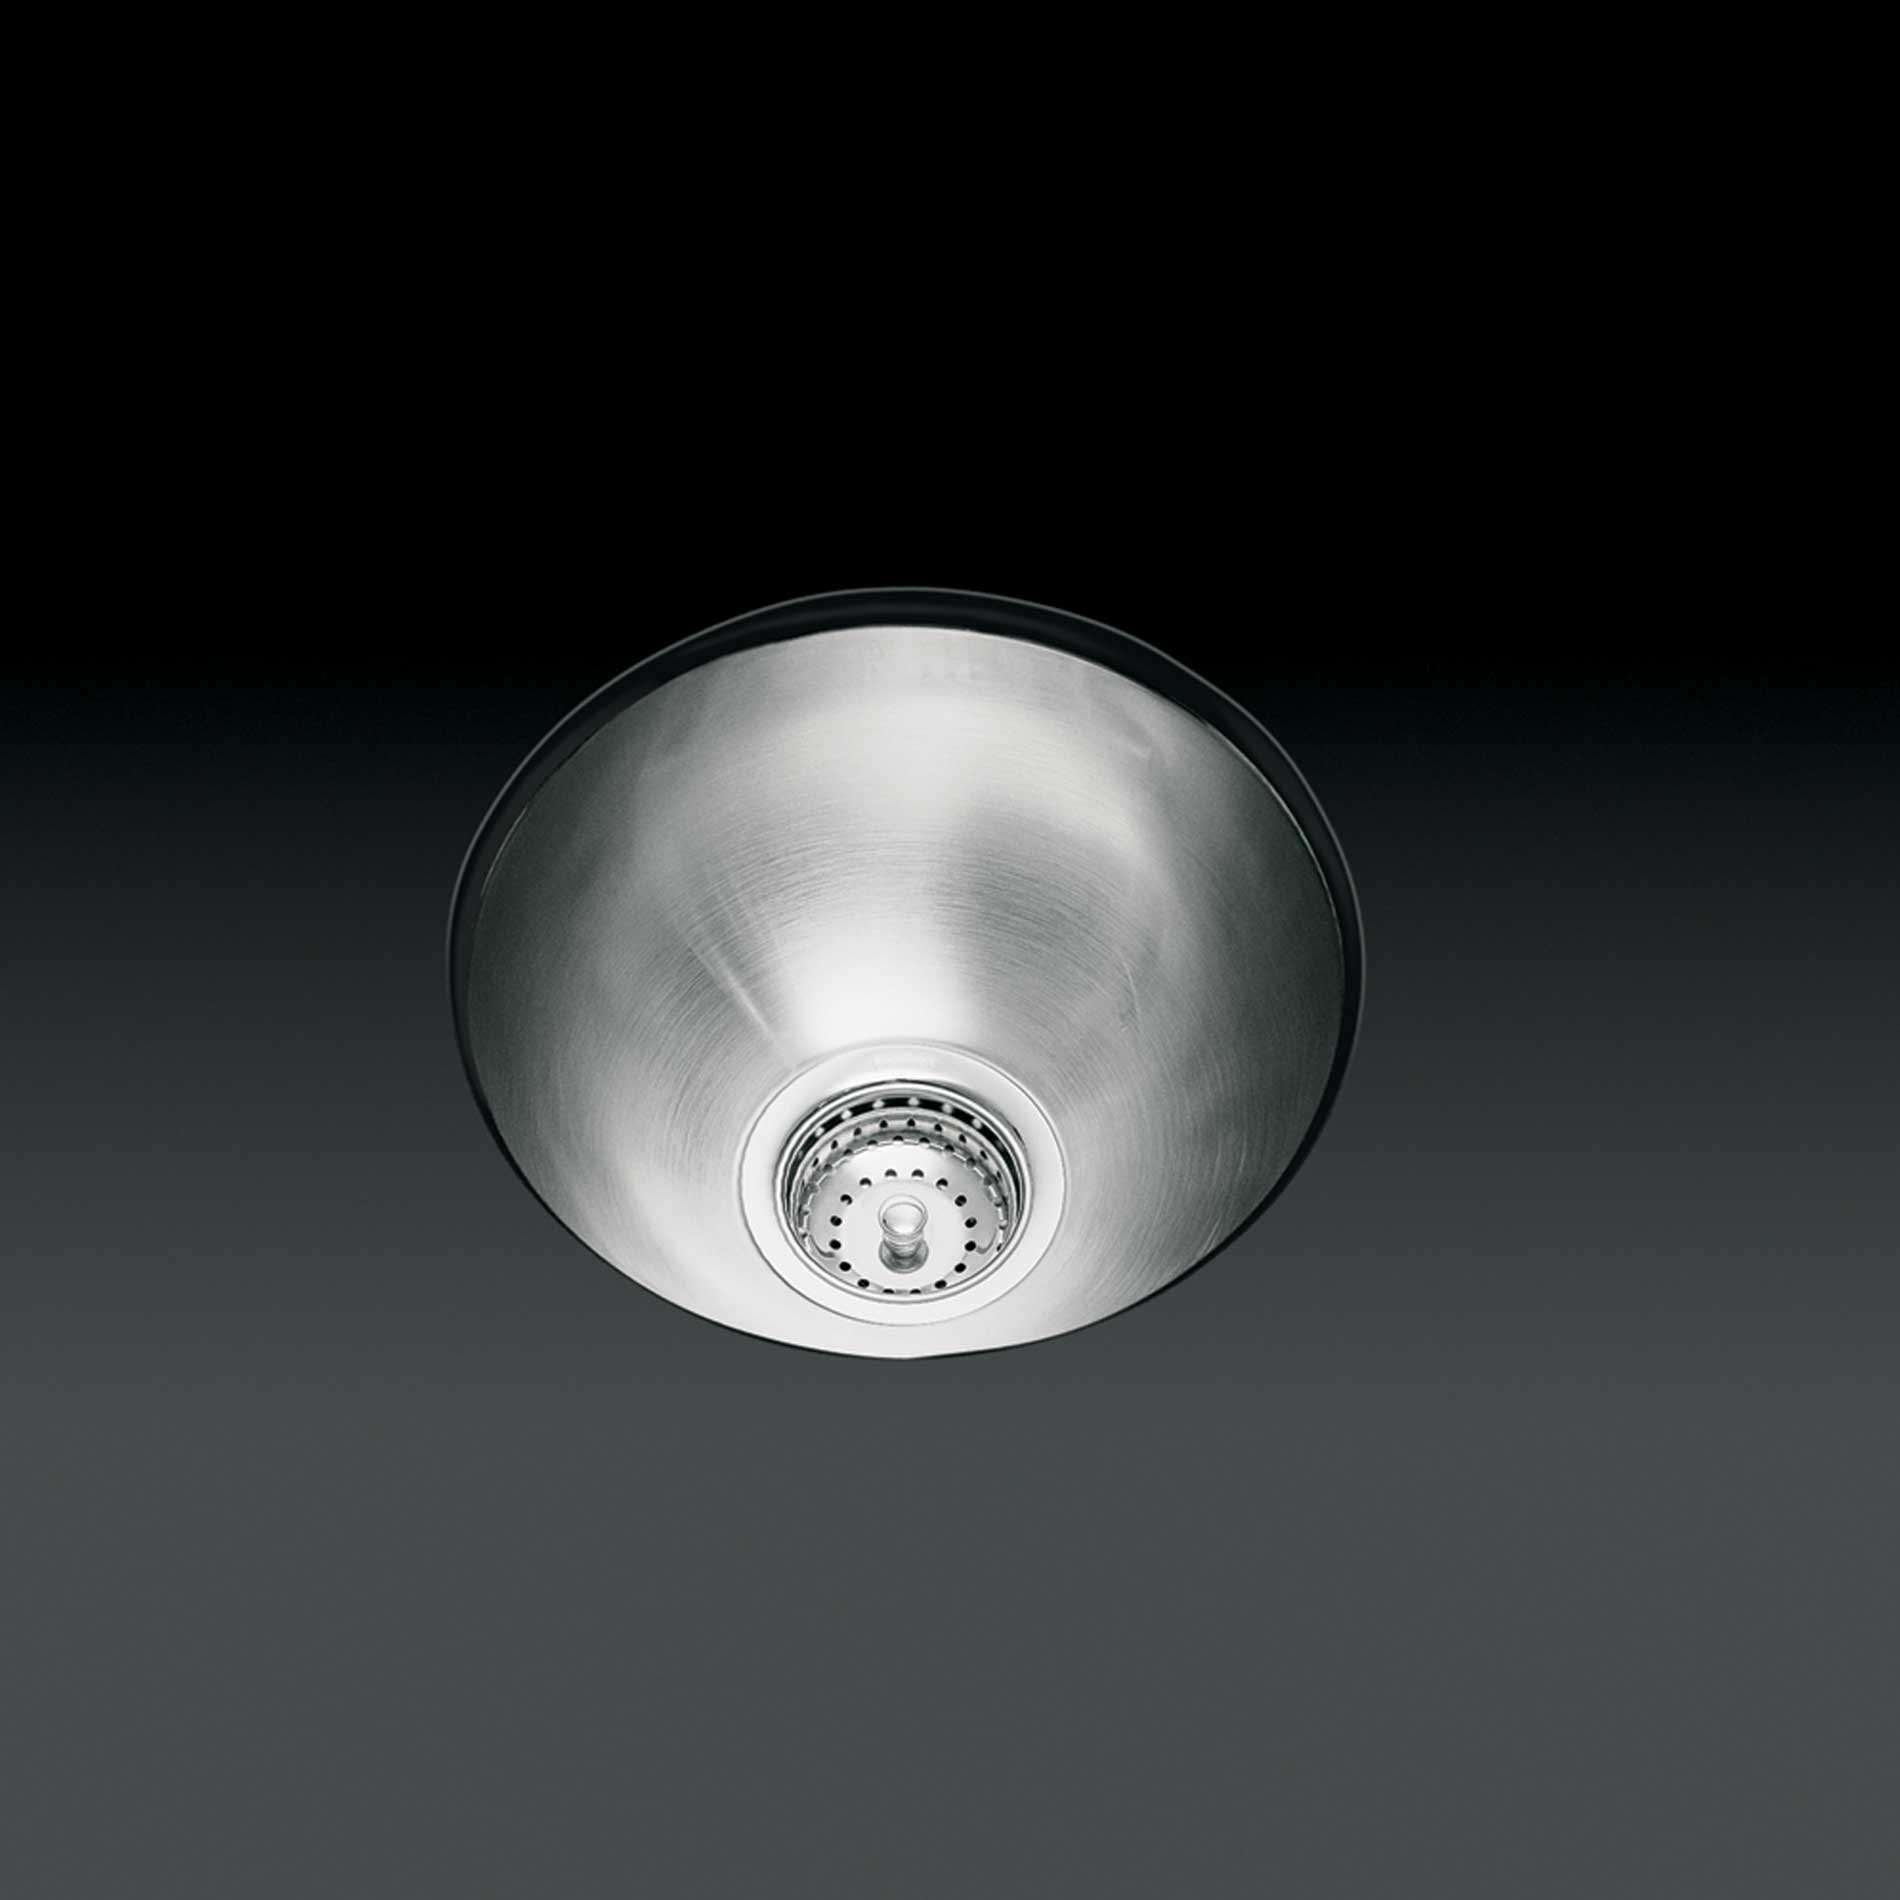 Picture of Icerock 3339 Stainless Steel Sink